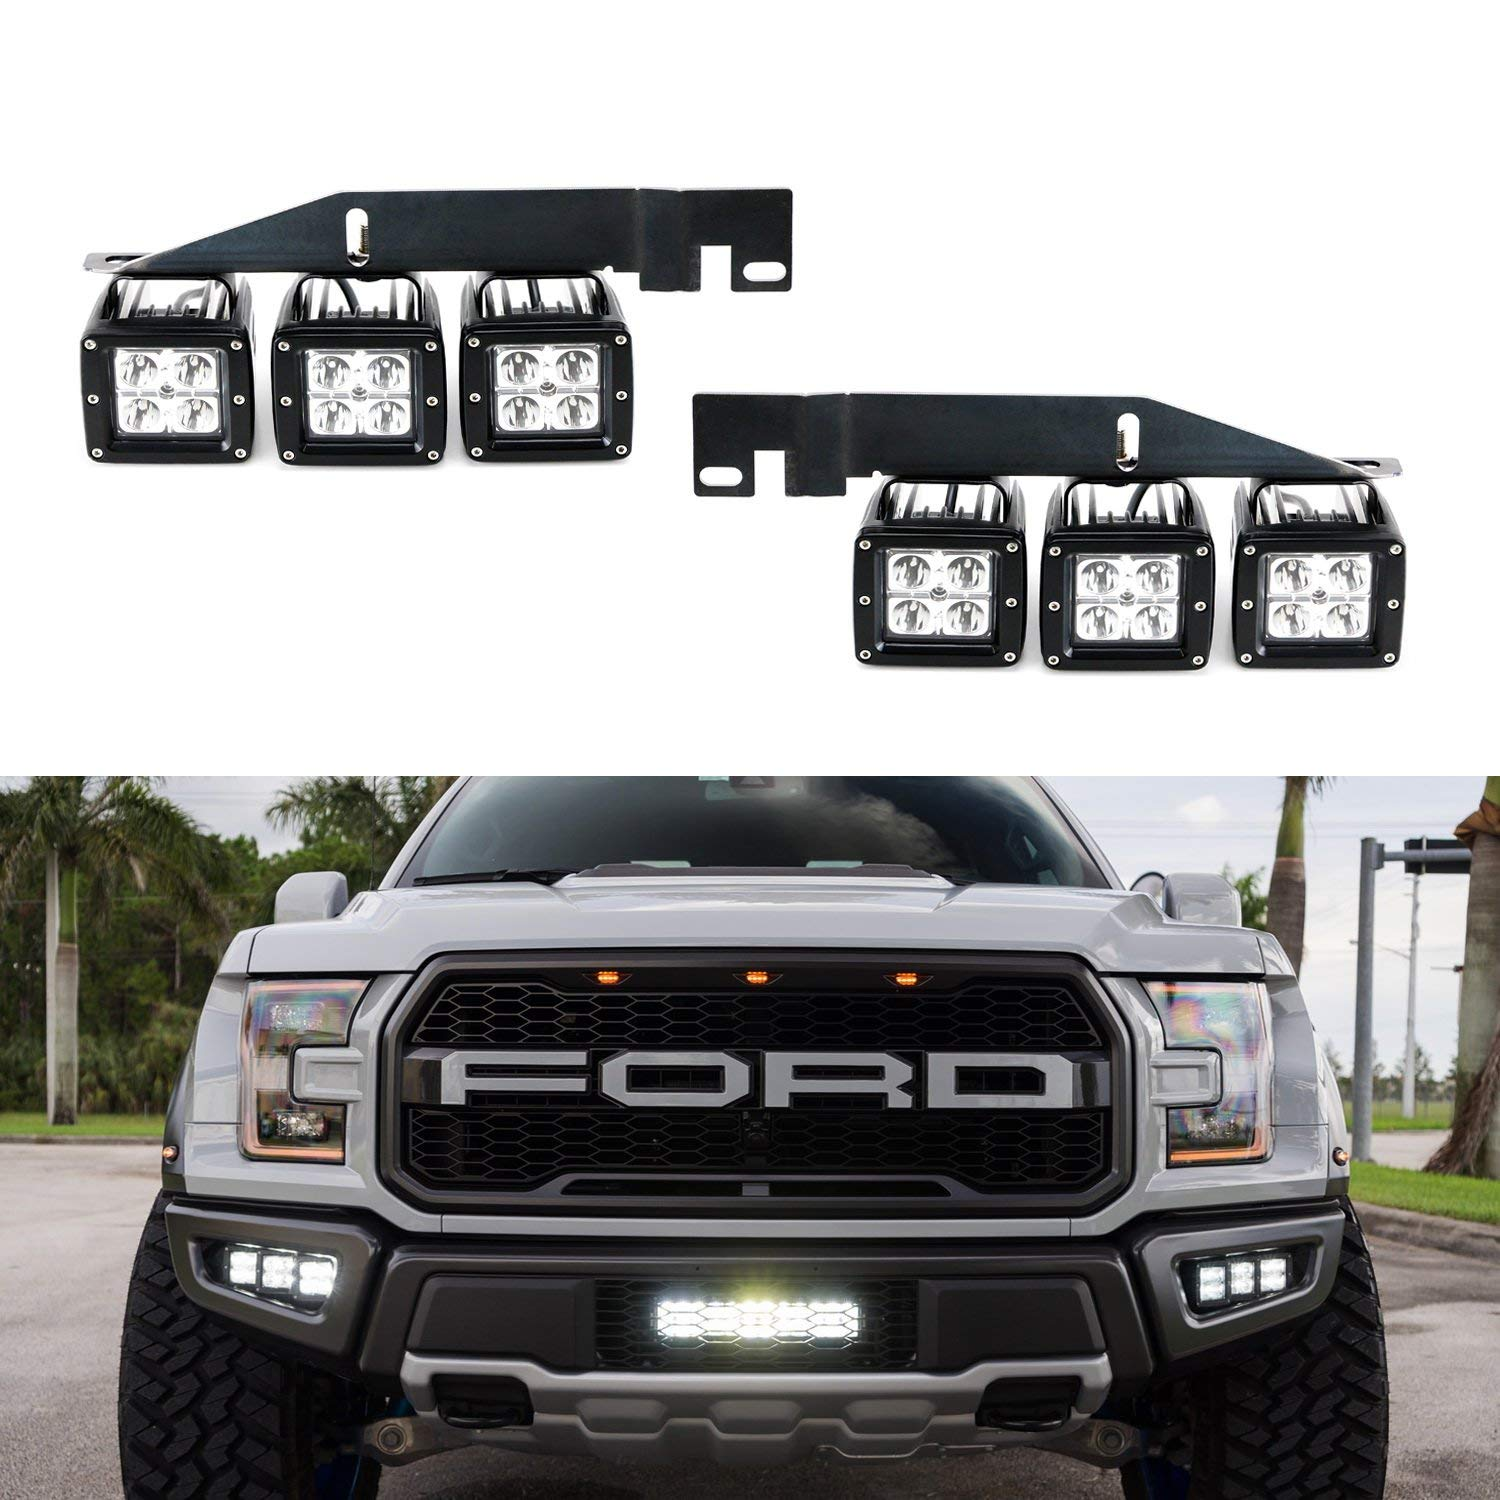 70 247 Ijdmtoy 70 247 White 6000k White Off Road Led Light 2017 2018 And Up Ford Raptor